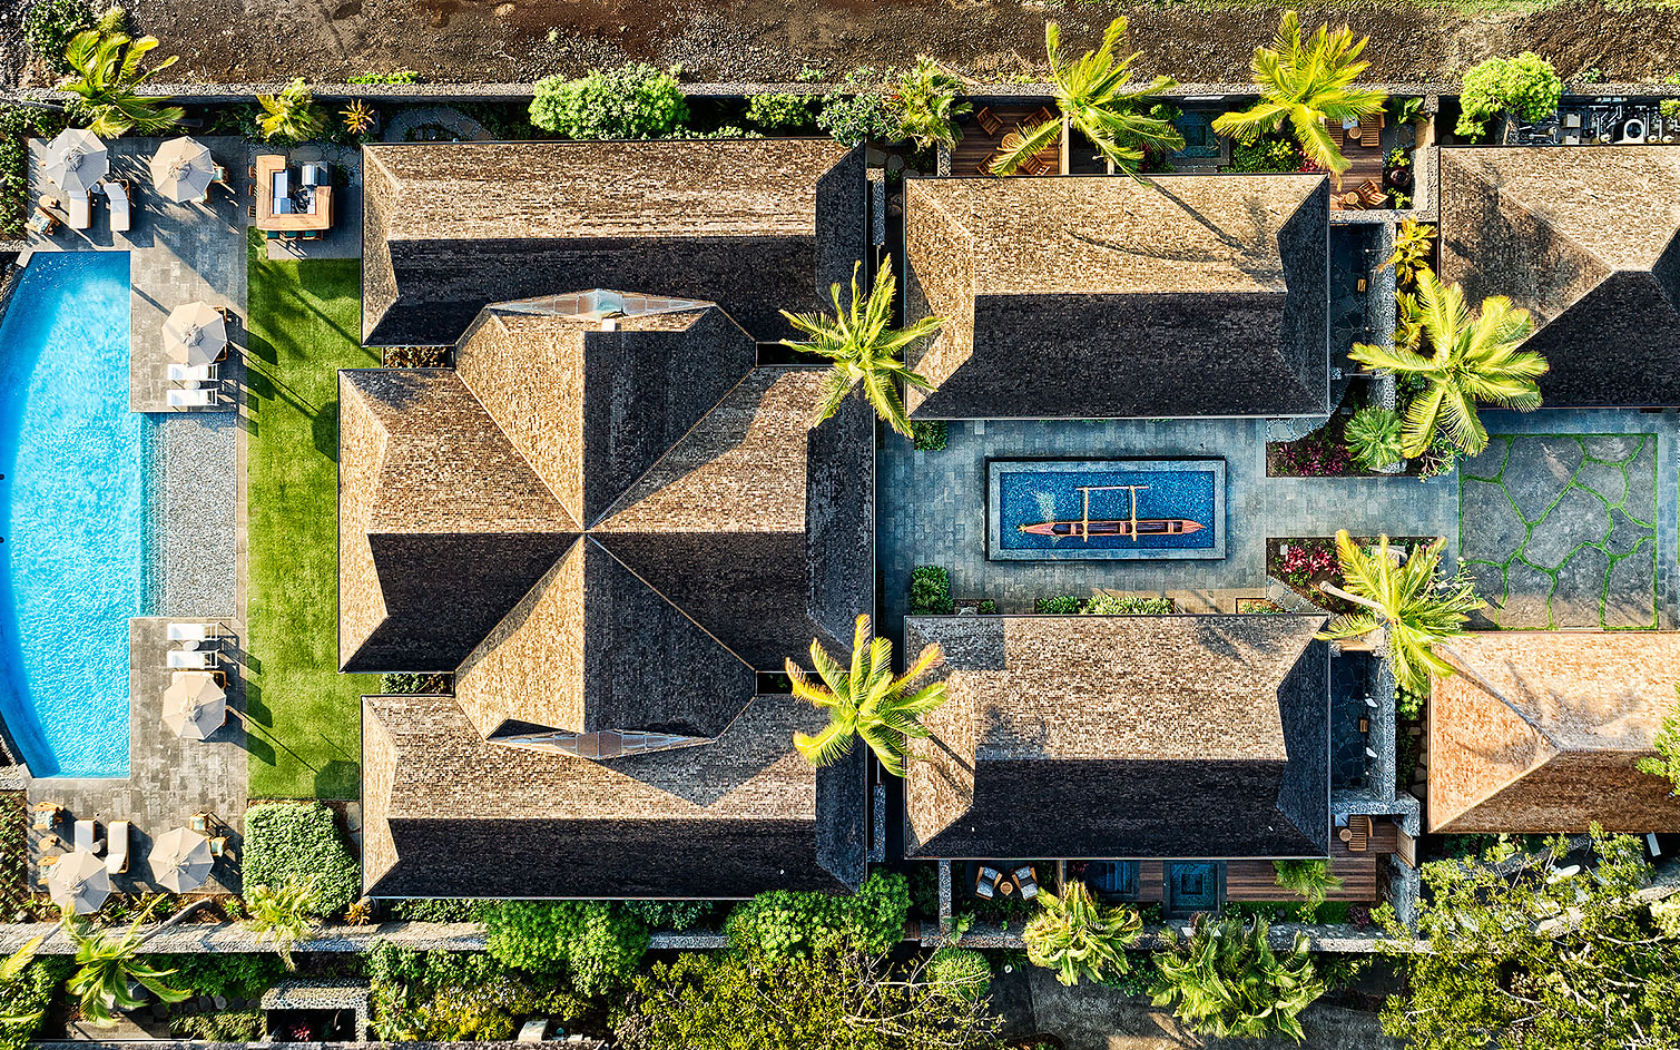 luxury-hotel-villa-aerial-photo-panaviz